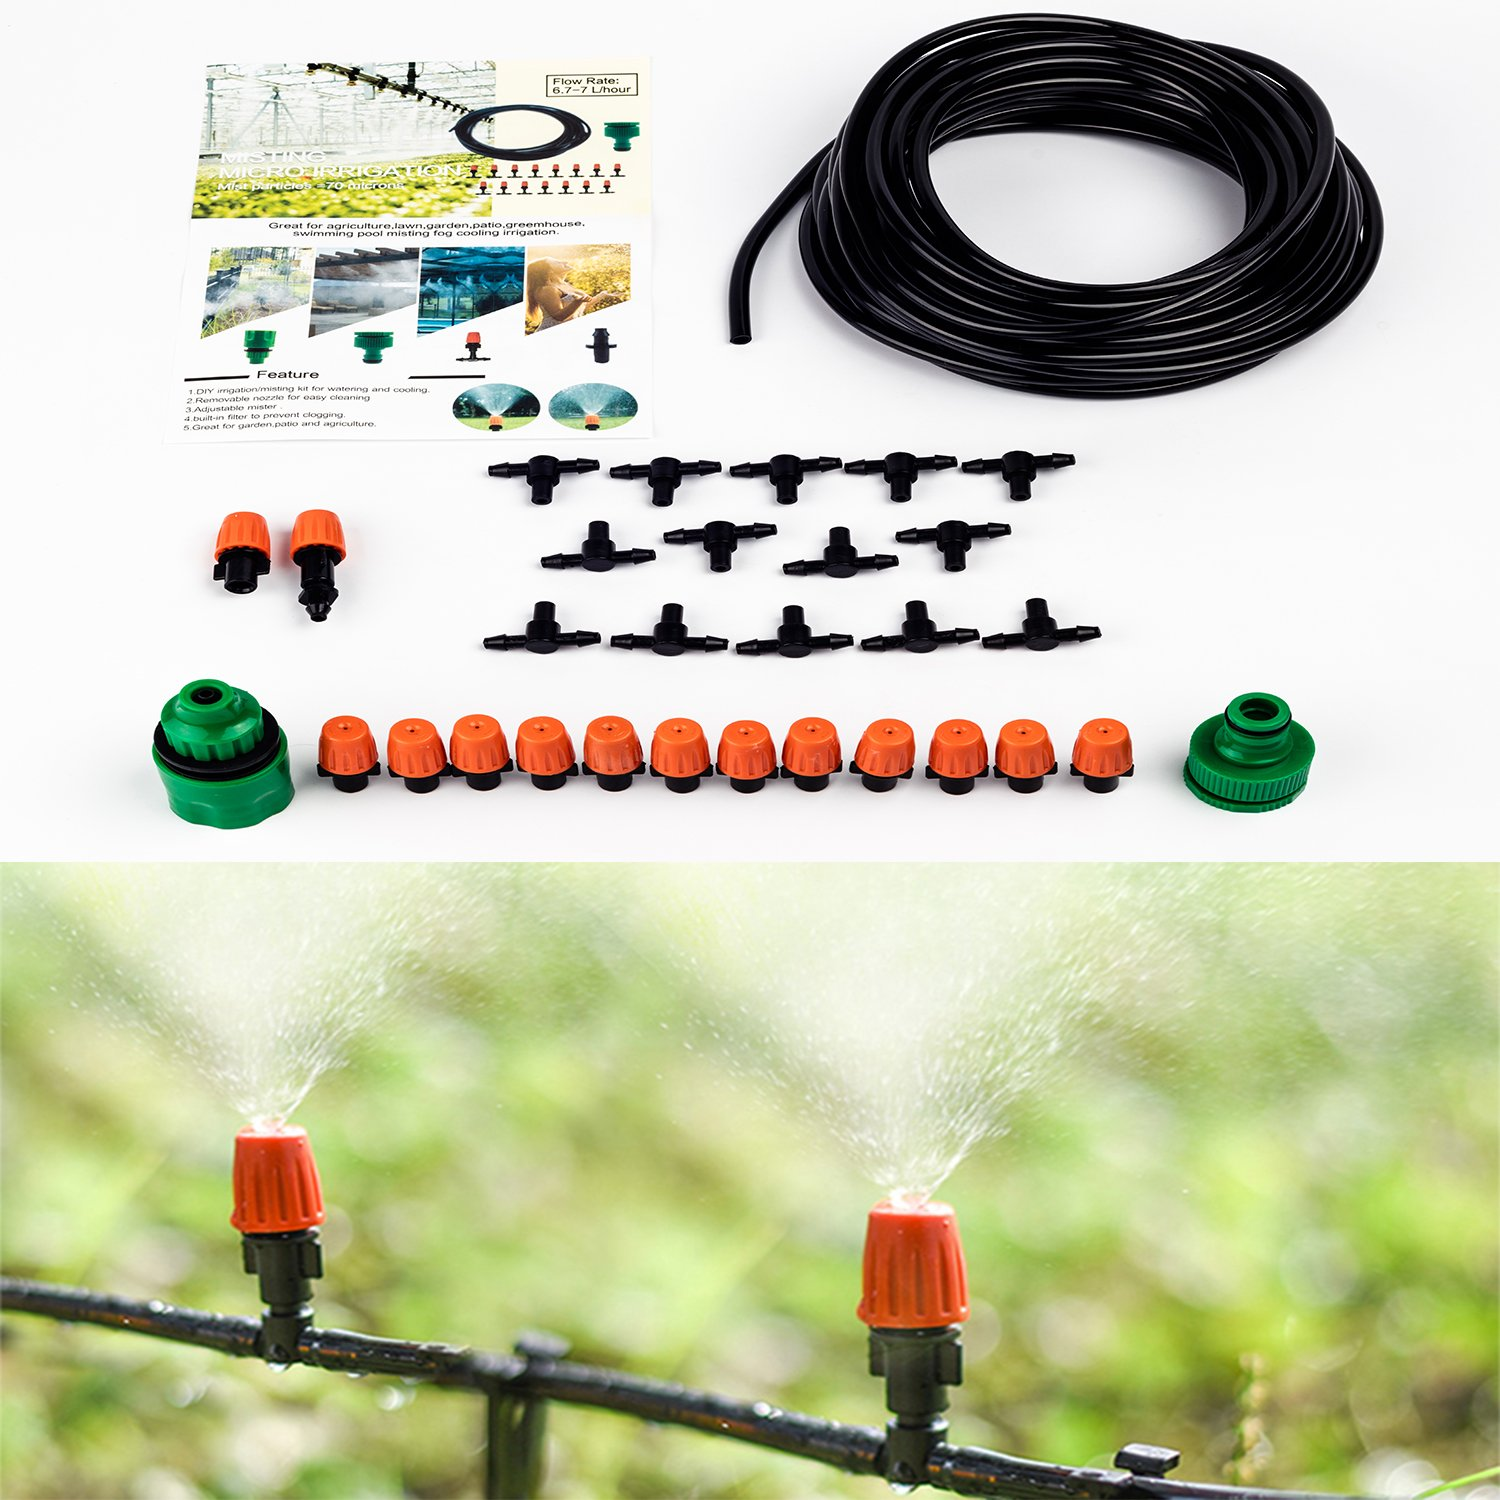 Light In Dark Improved Version Plant Irrigation Misting System Garden Patio Free Installation Book Included